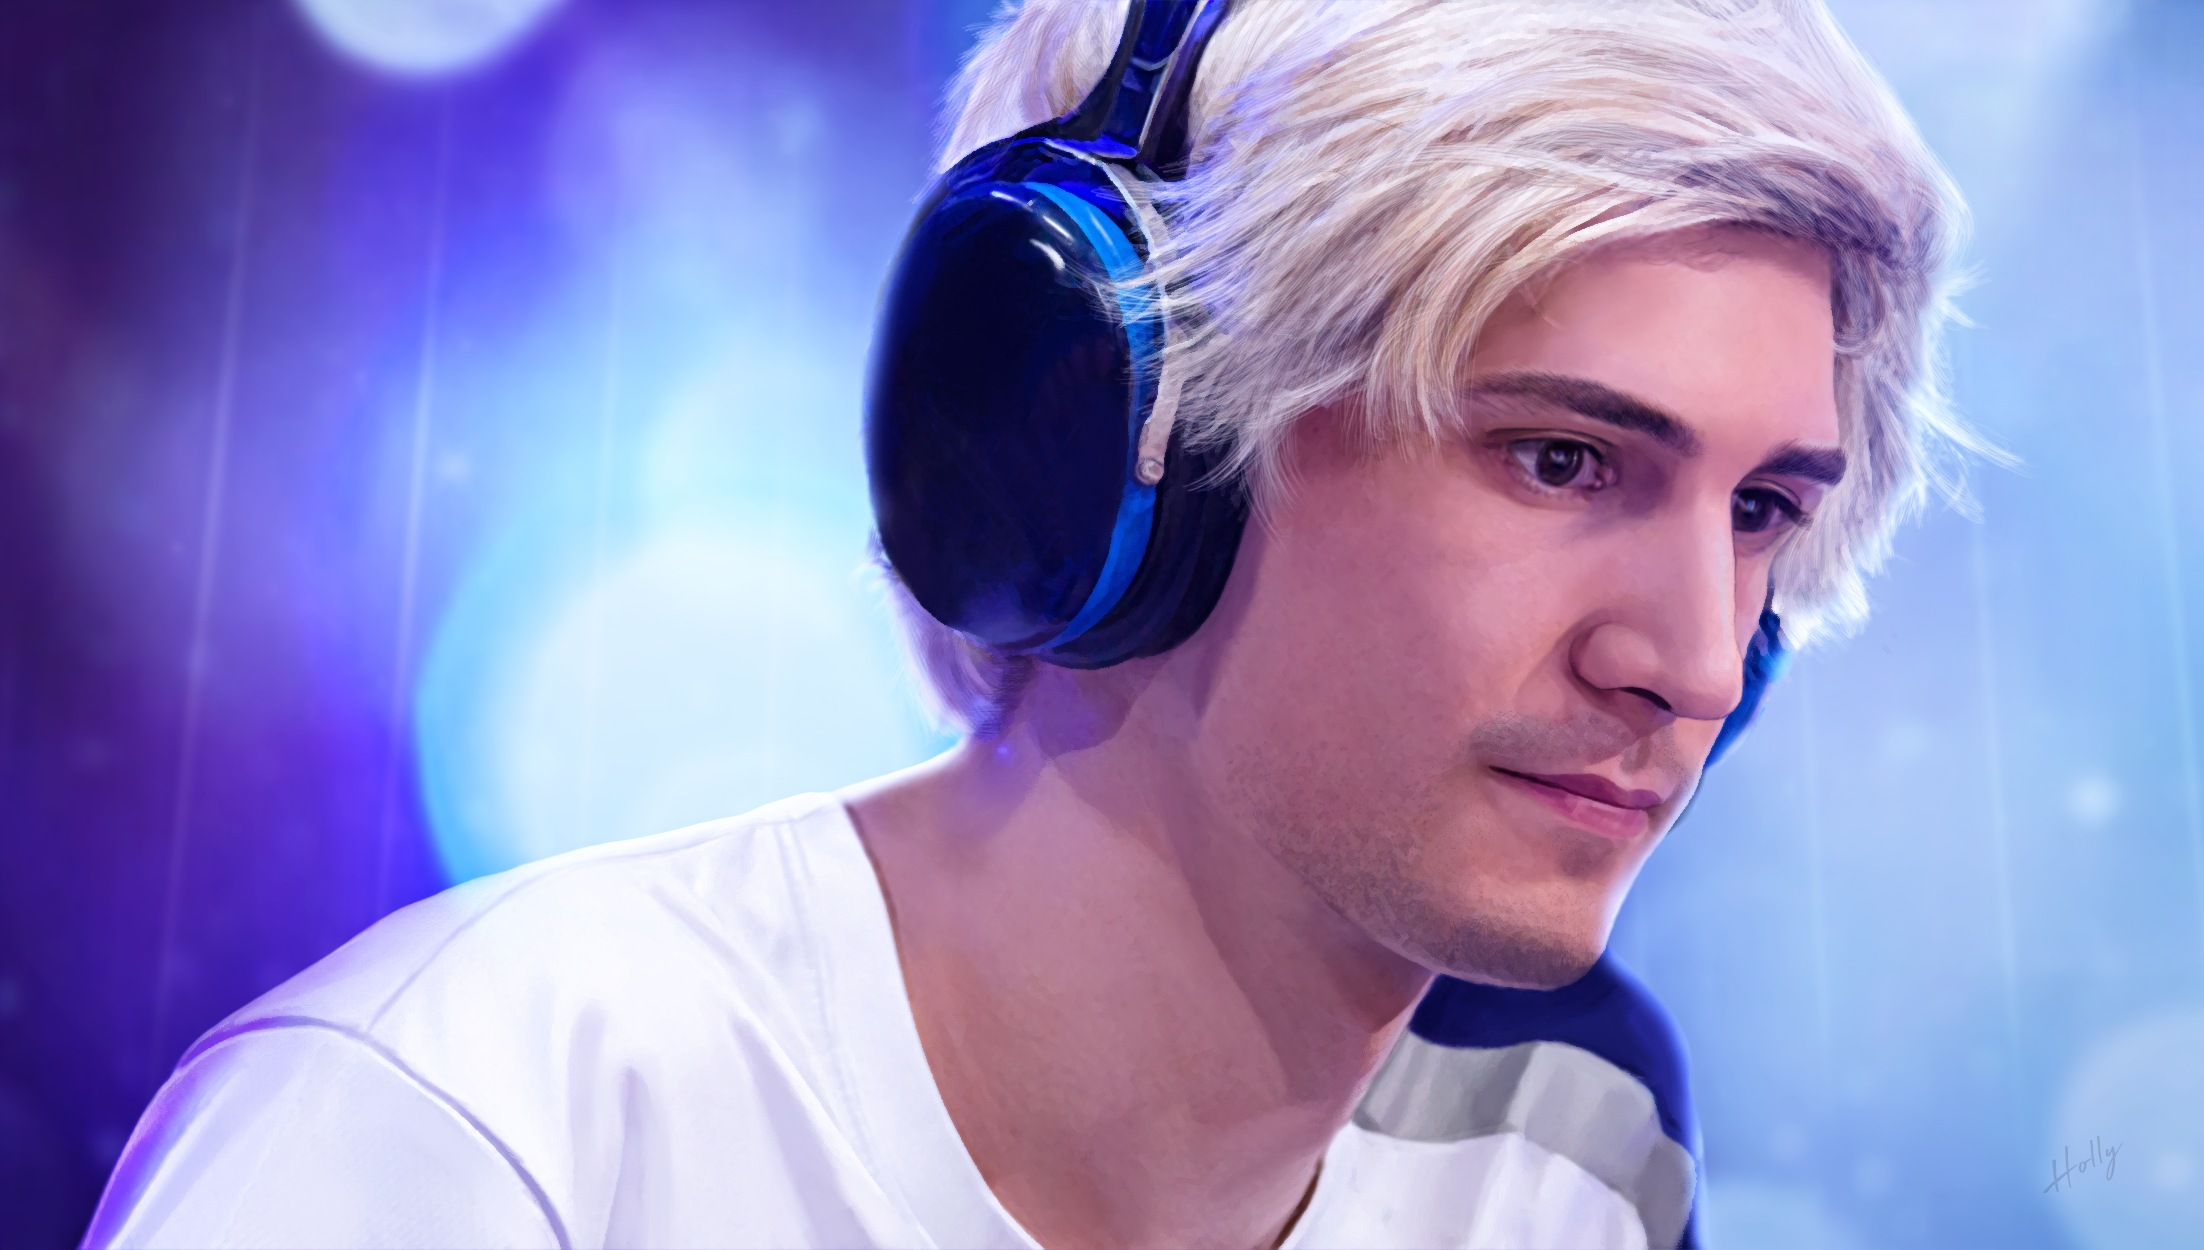 Toreba crane game scams twitch streamer xQc